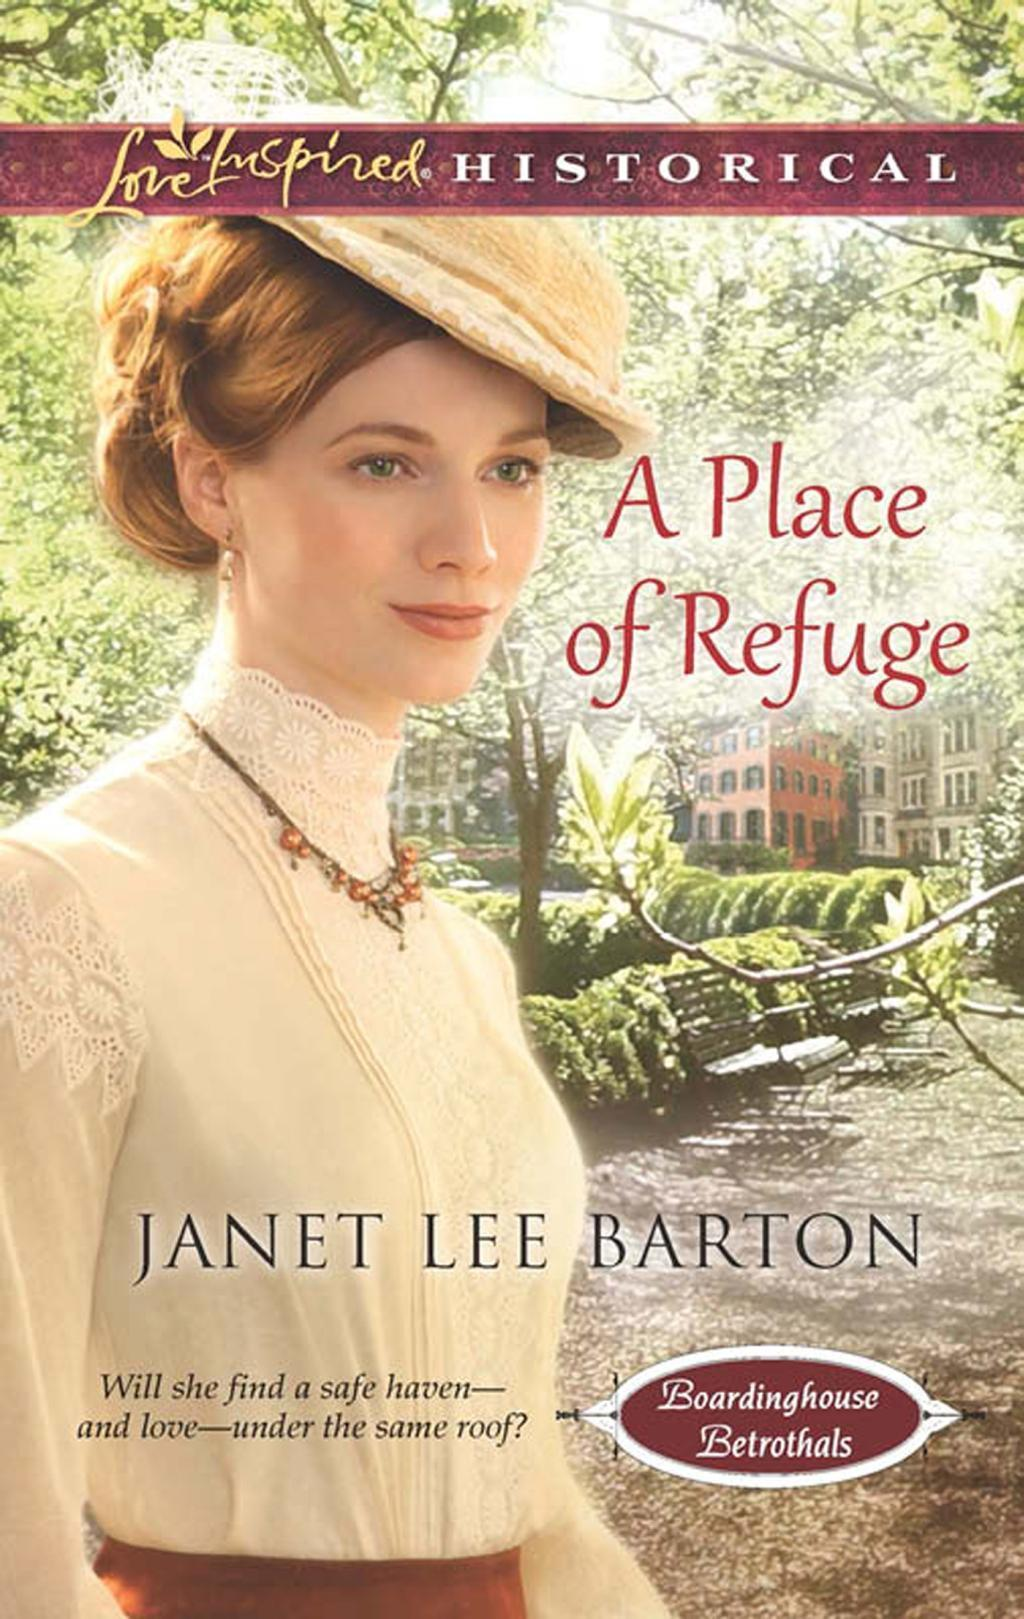 A Place of Refuge (Mills & Boon Love Inspired Historical) (Boardinghouse Betrothals, Book 2)